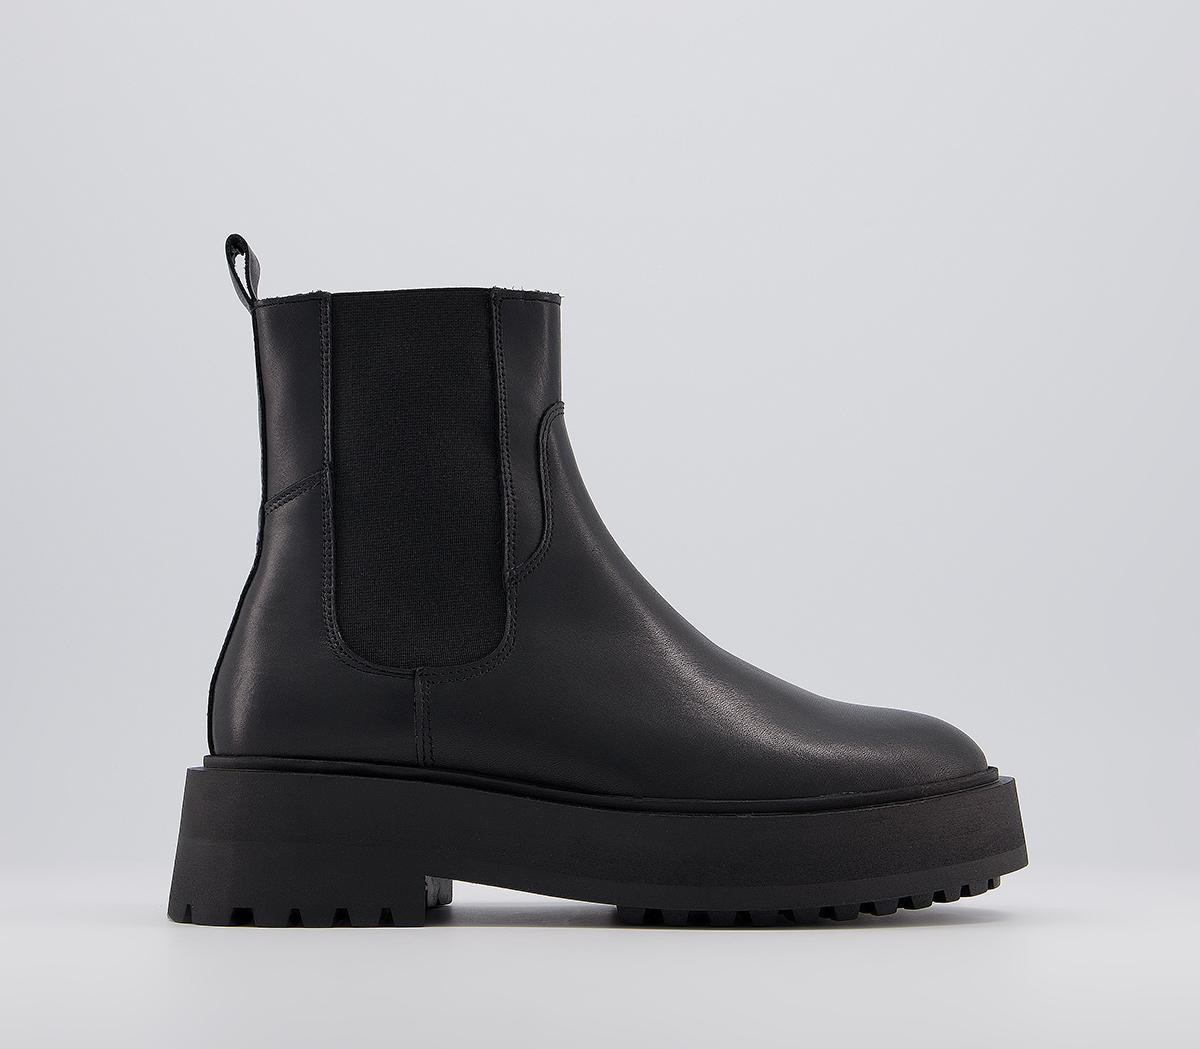 Assemble Smooth Sole Chelsea Boots